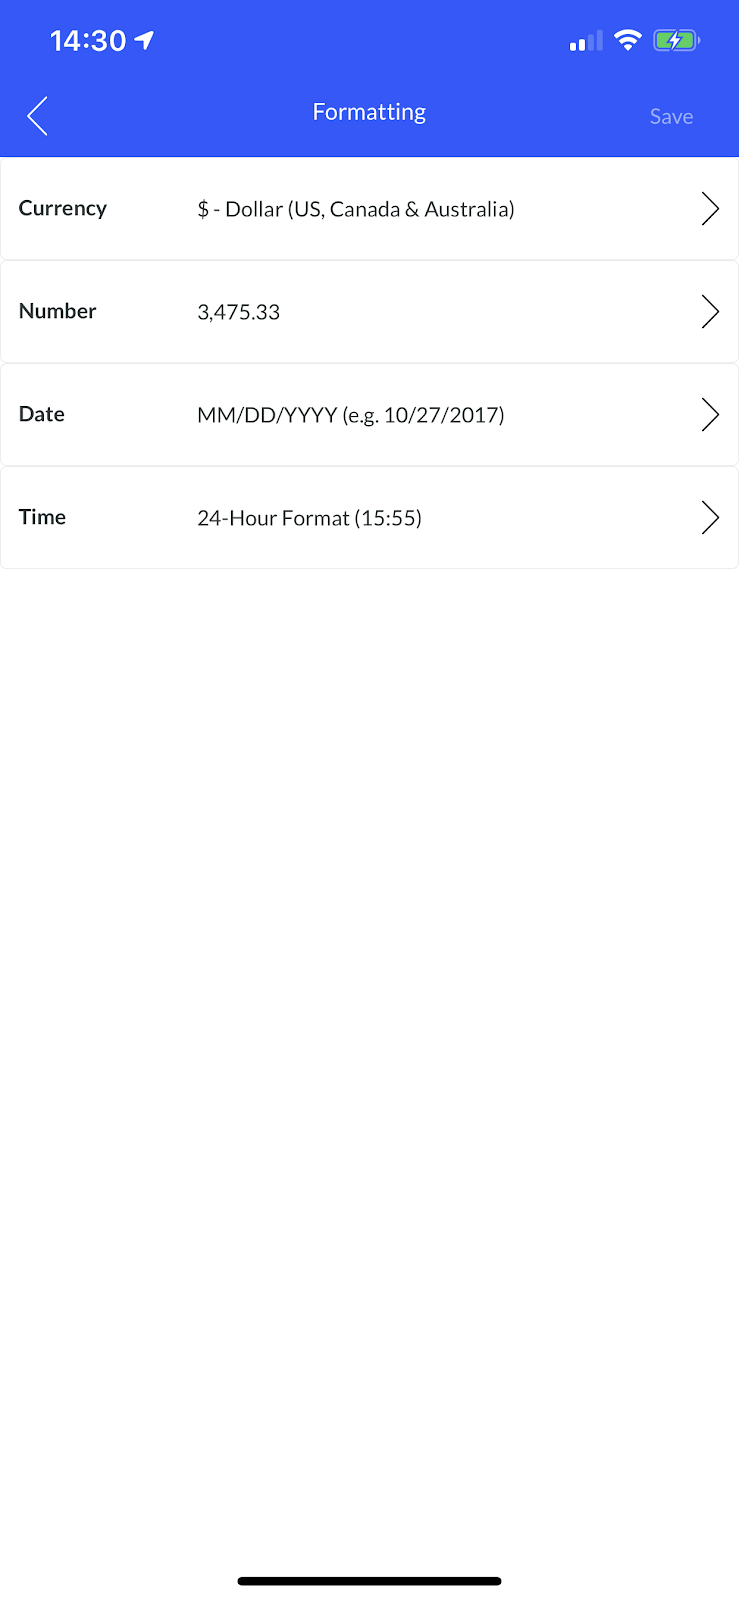 Screenshot showing how to format office settings within the mobile app